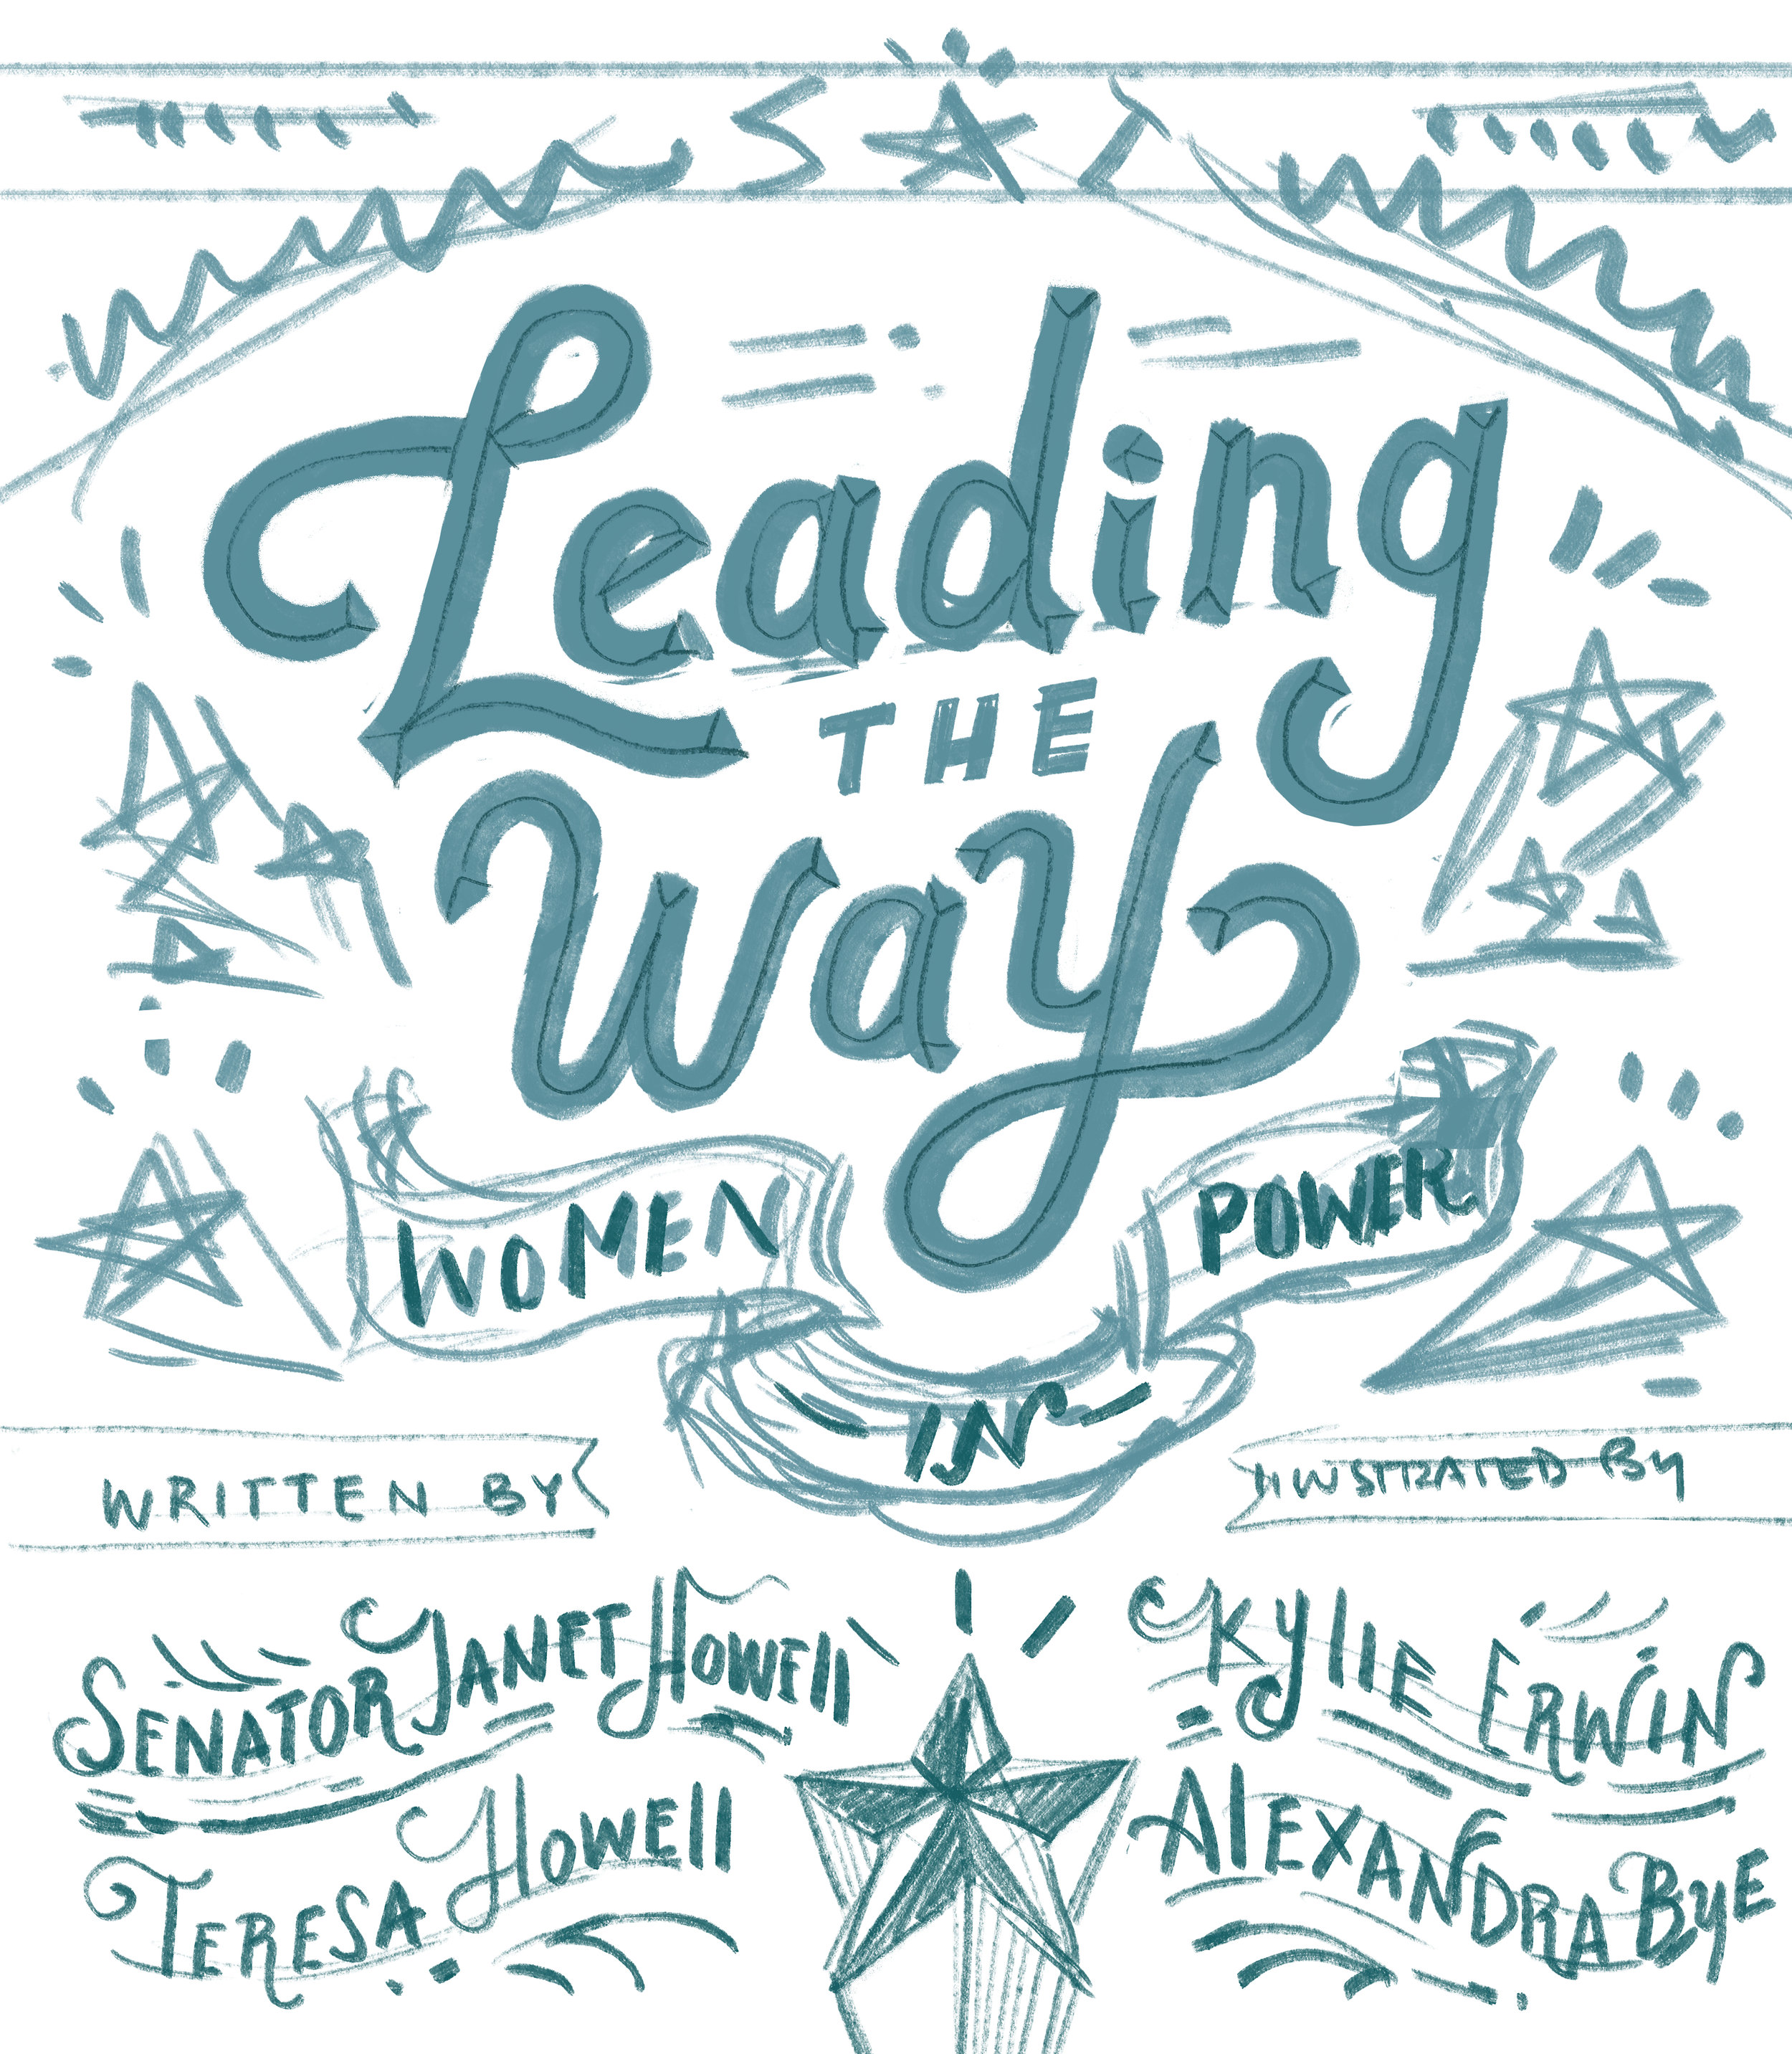 Leading The Way cover8 .jpg